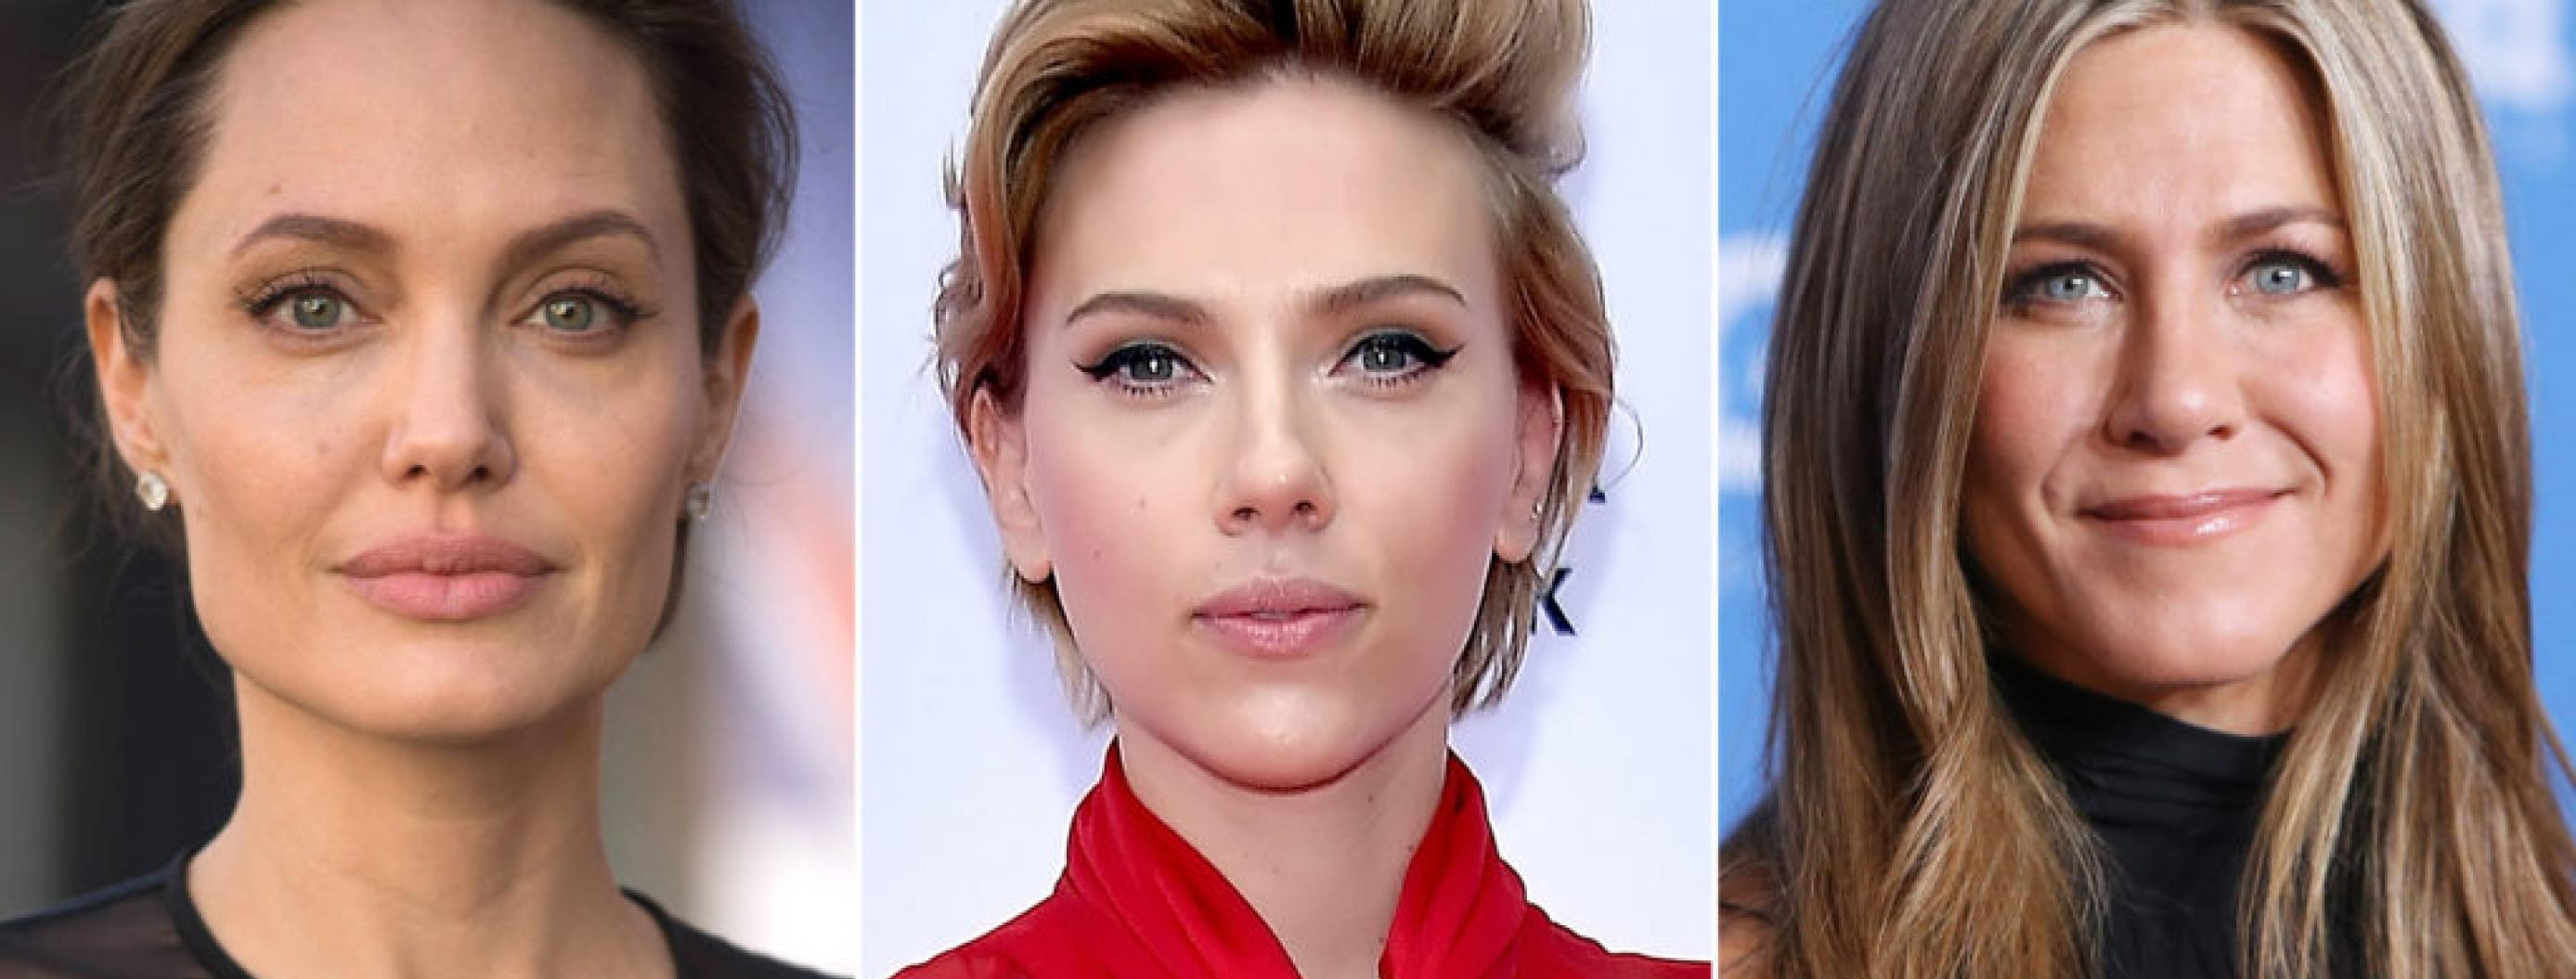 Scarlett Johansson is Now the Highest Paid Actress in Hollywood